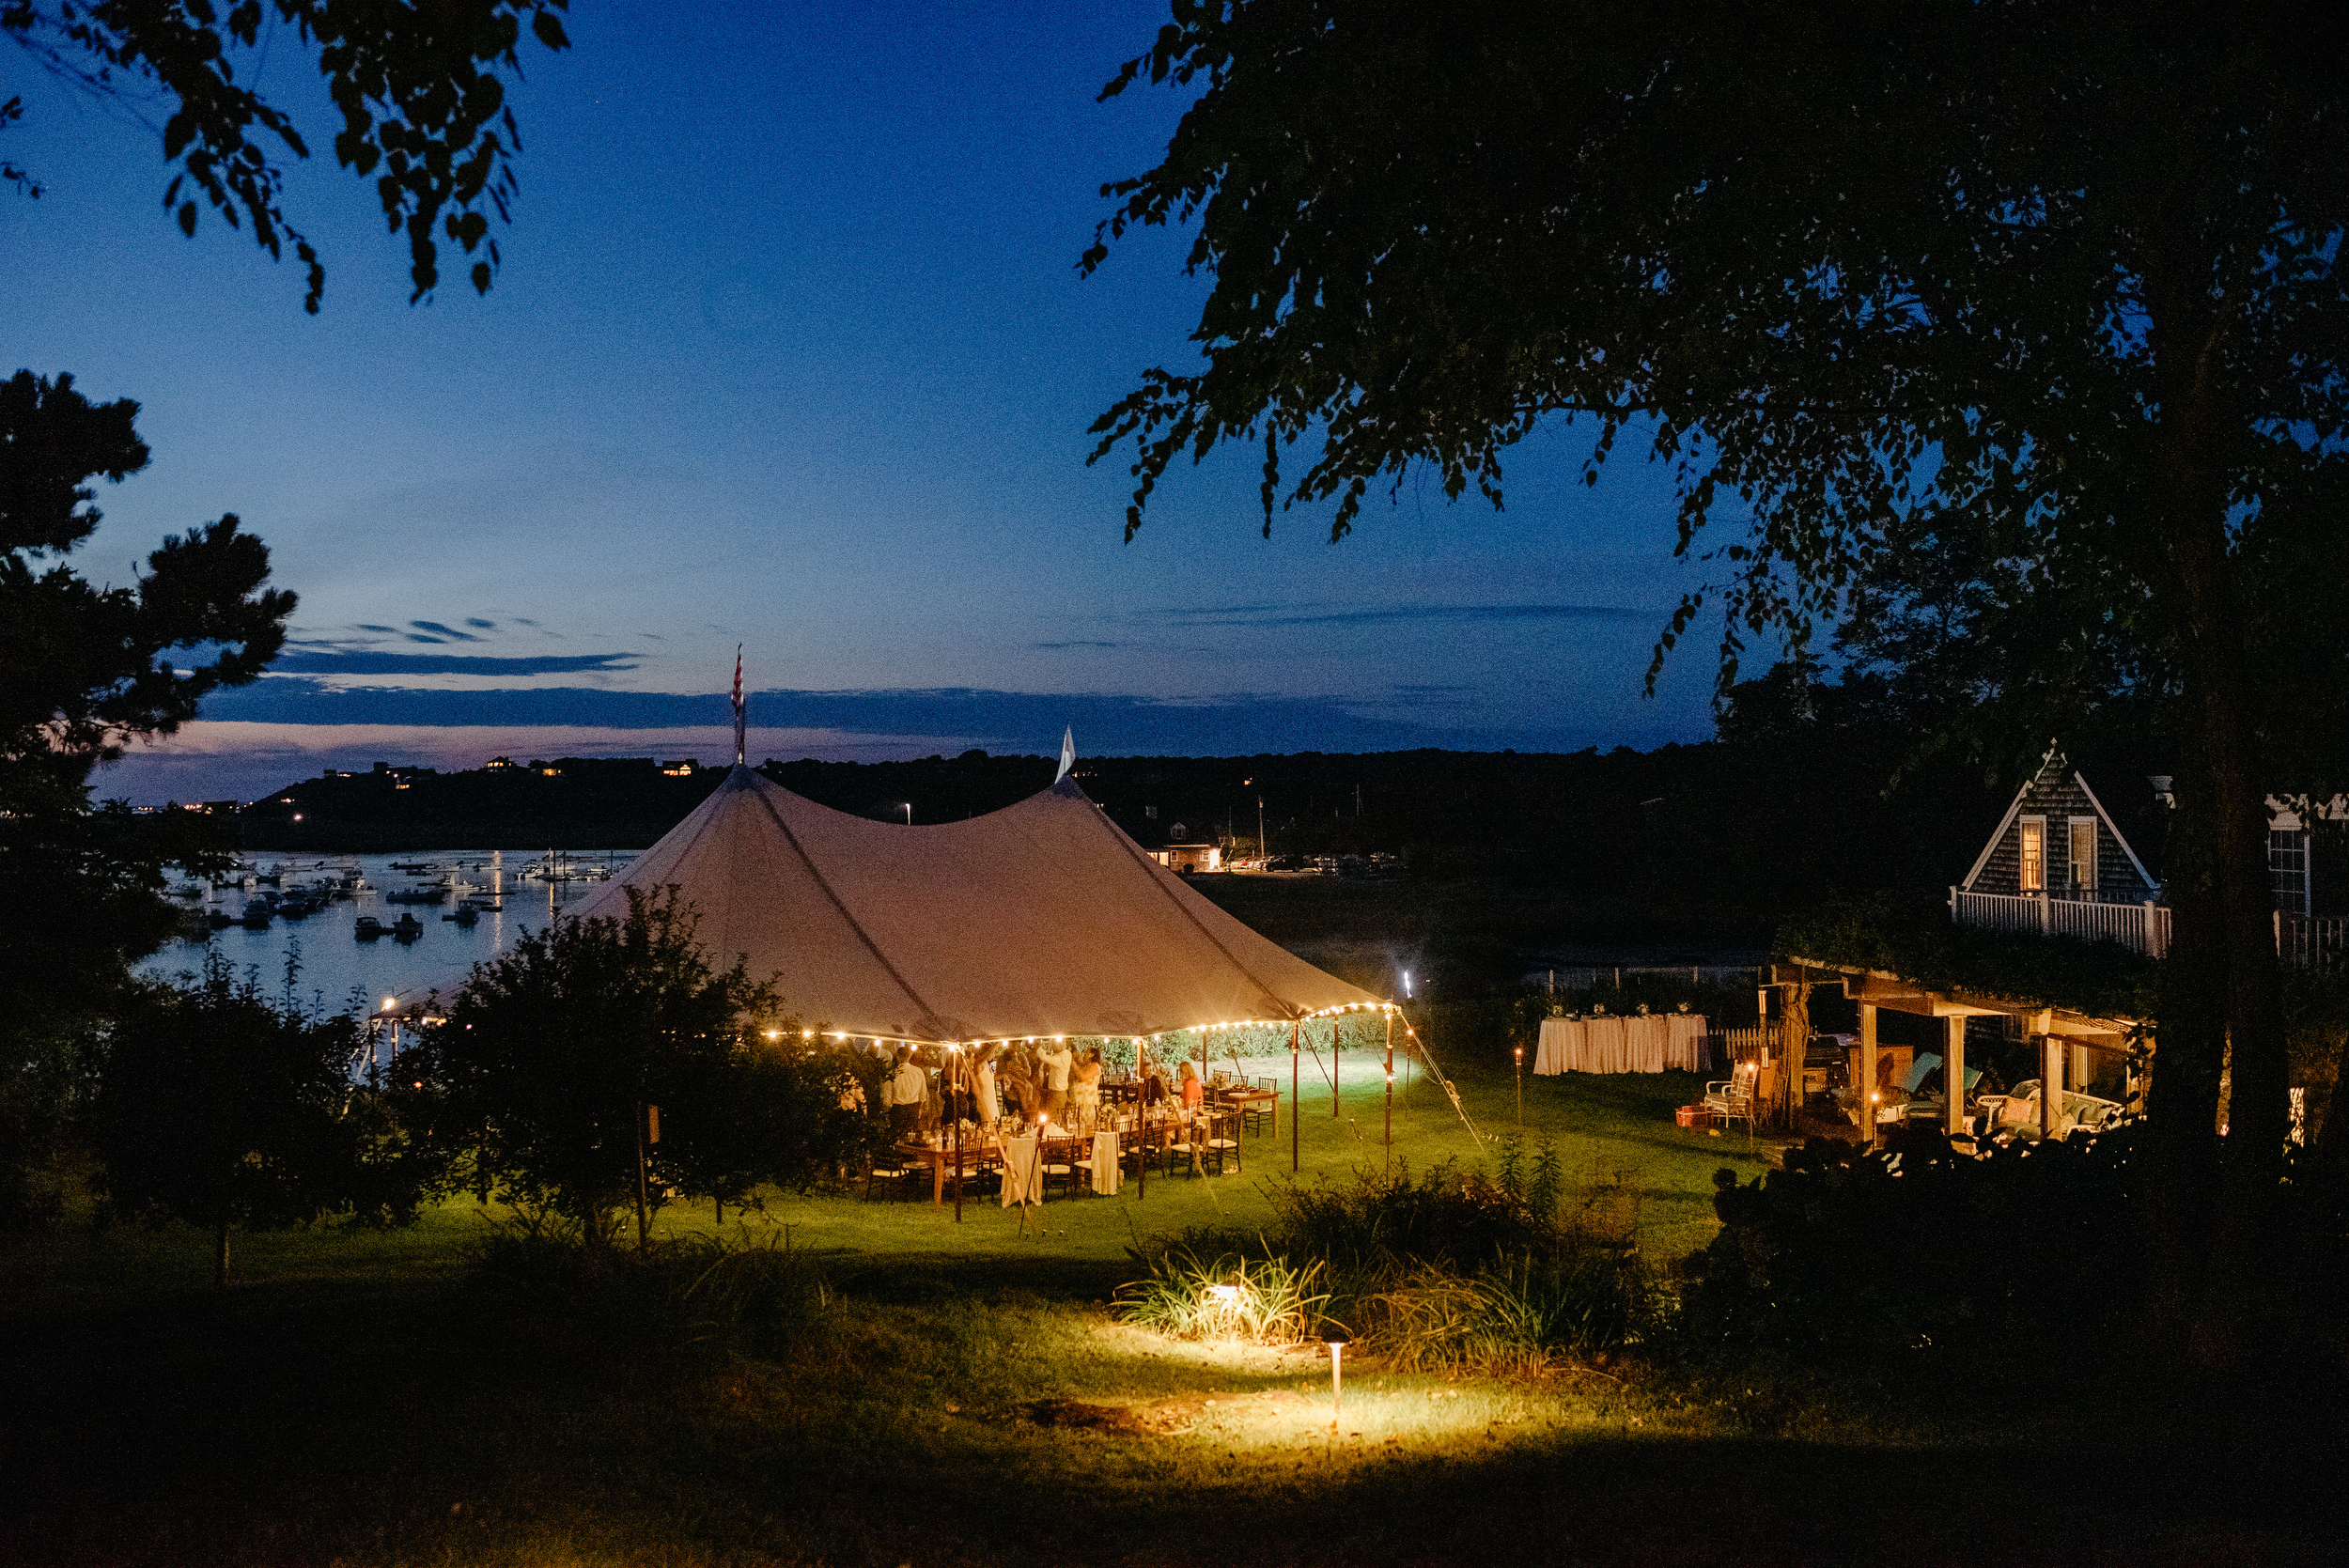 eagles neck 20 mill pond road wedding at night time